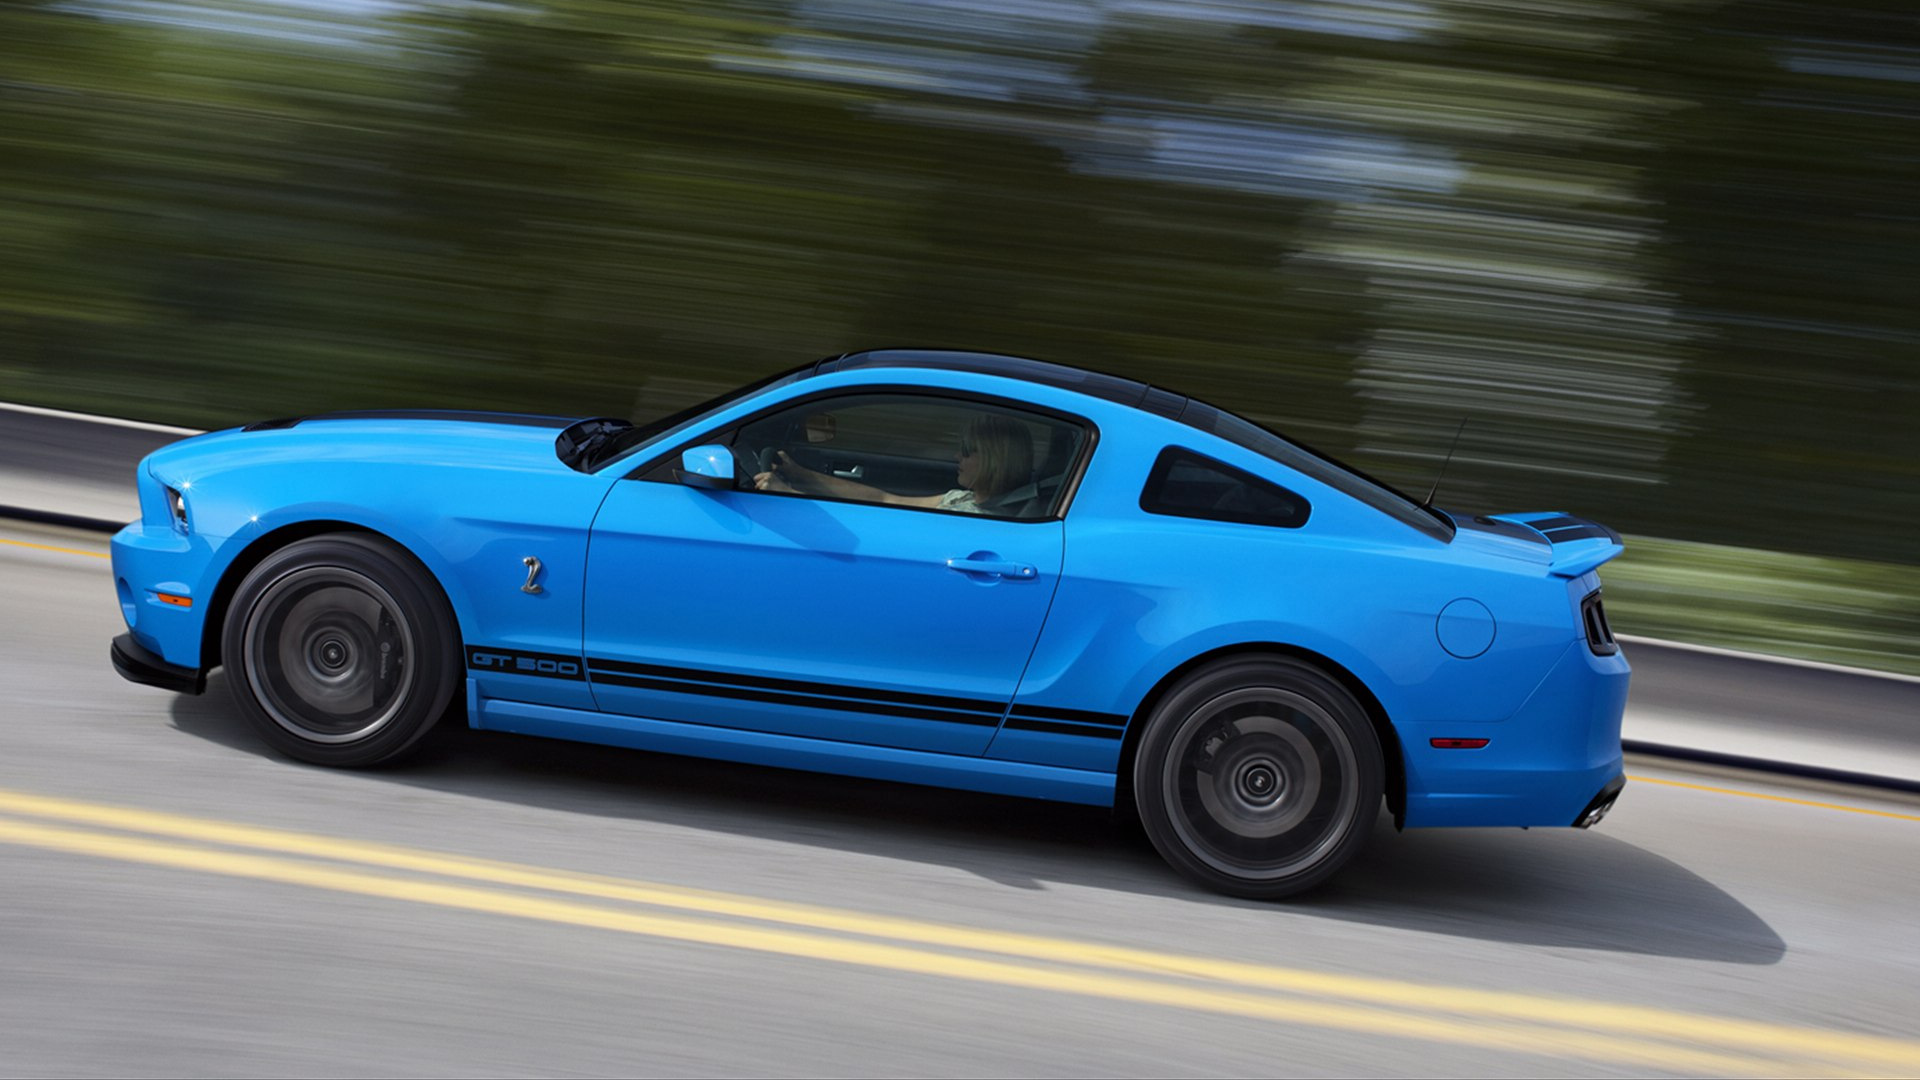 WallpapersFord Mustang 1920x1080 Wallpapers Pictures Download 1920x1080